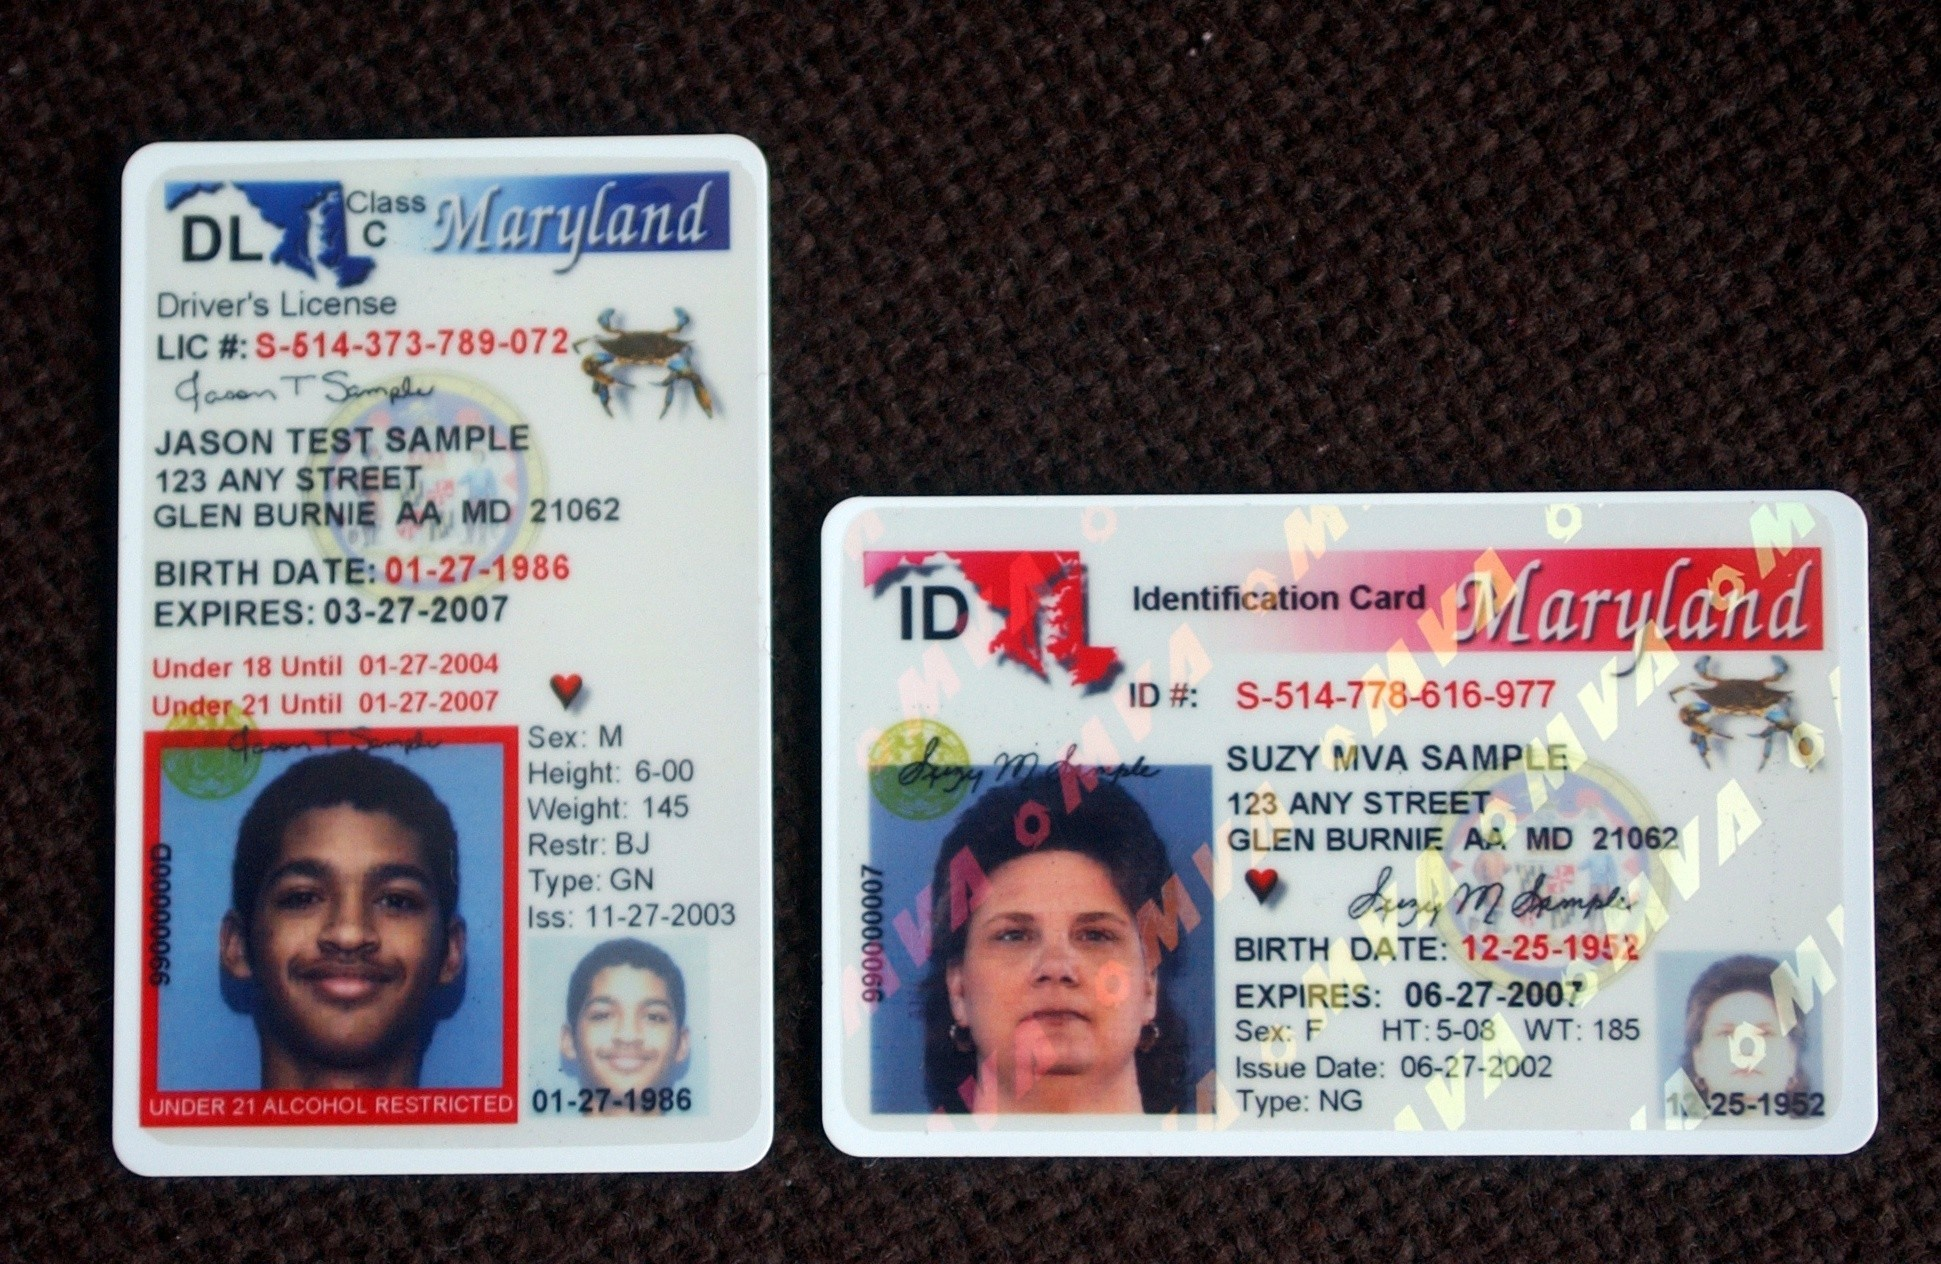 Maryland New Capital Gazette License Driver's -